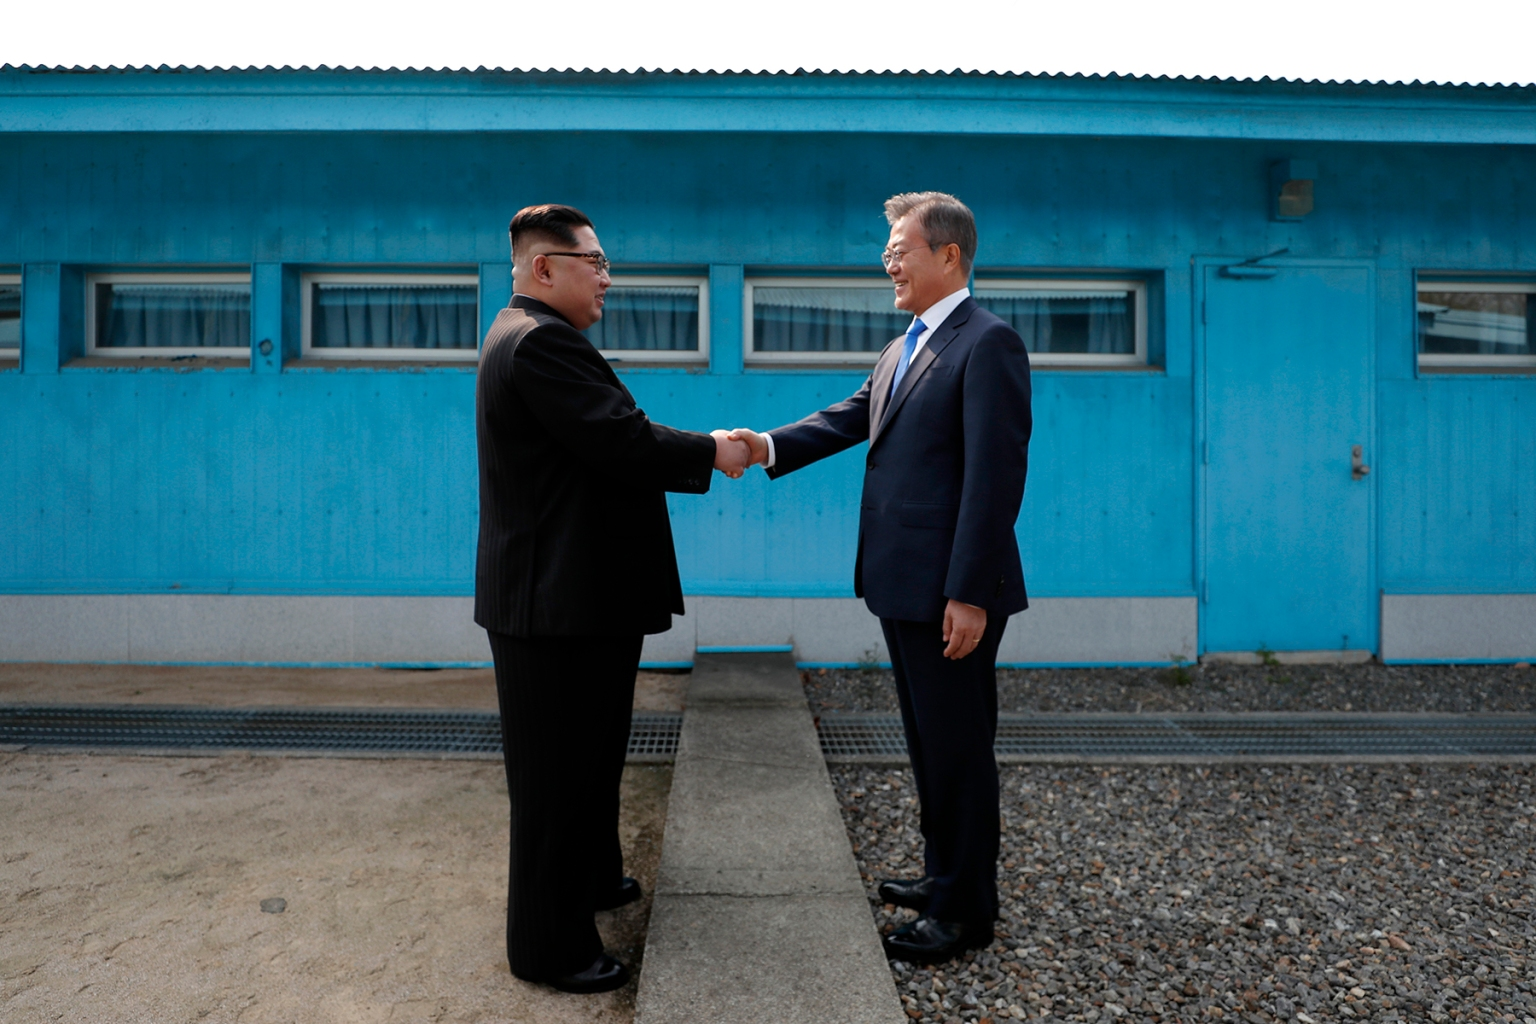 North Korea's leader Kim Jong Un shakes hands with South Korea's President Moon Jae-in at the Military Demarcation Line that divides their countries ahead of their summit at Panmunjom on April 27. KOREA SUMMIT PRESS POOL/AFP/Getty Images